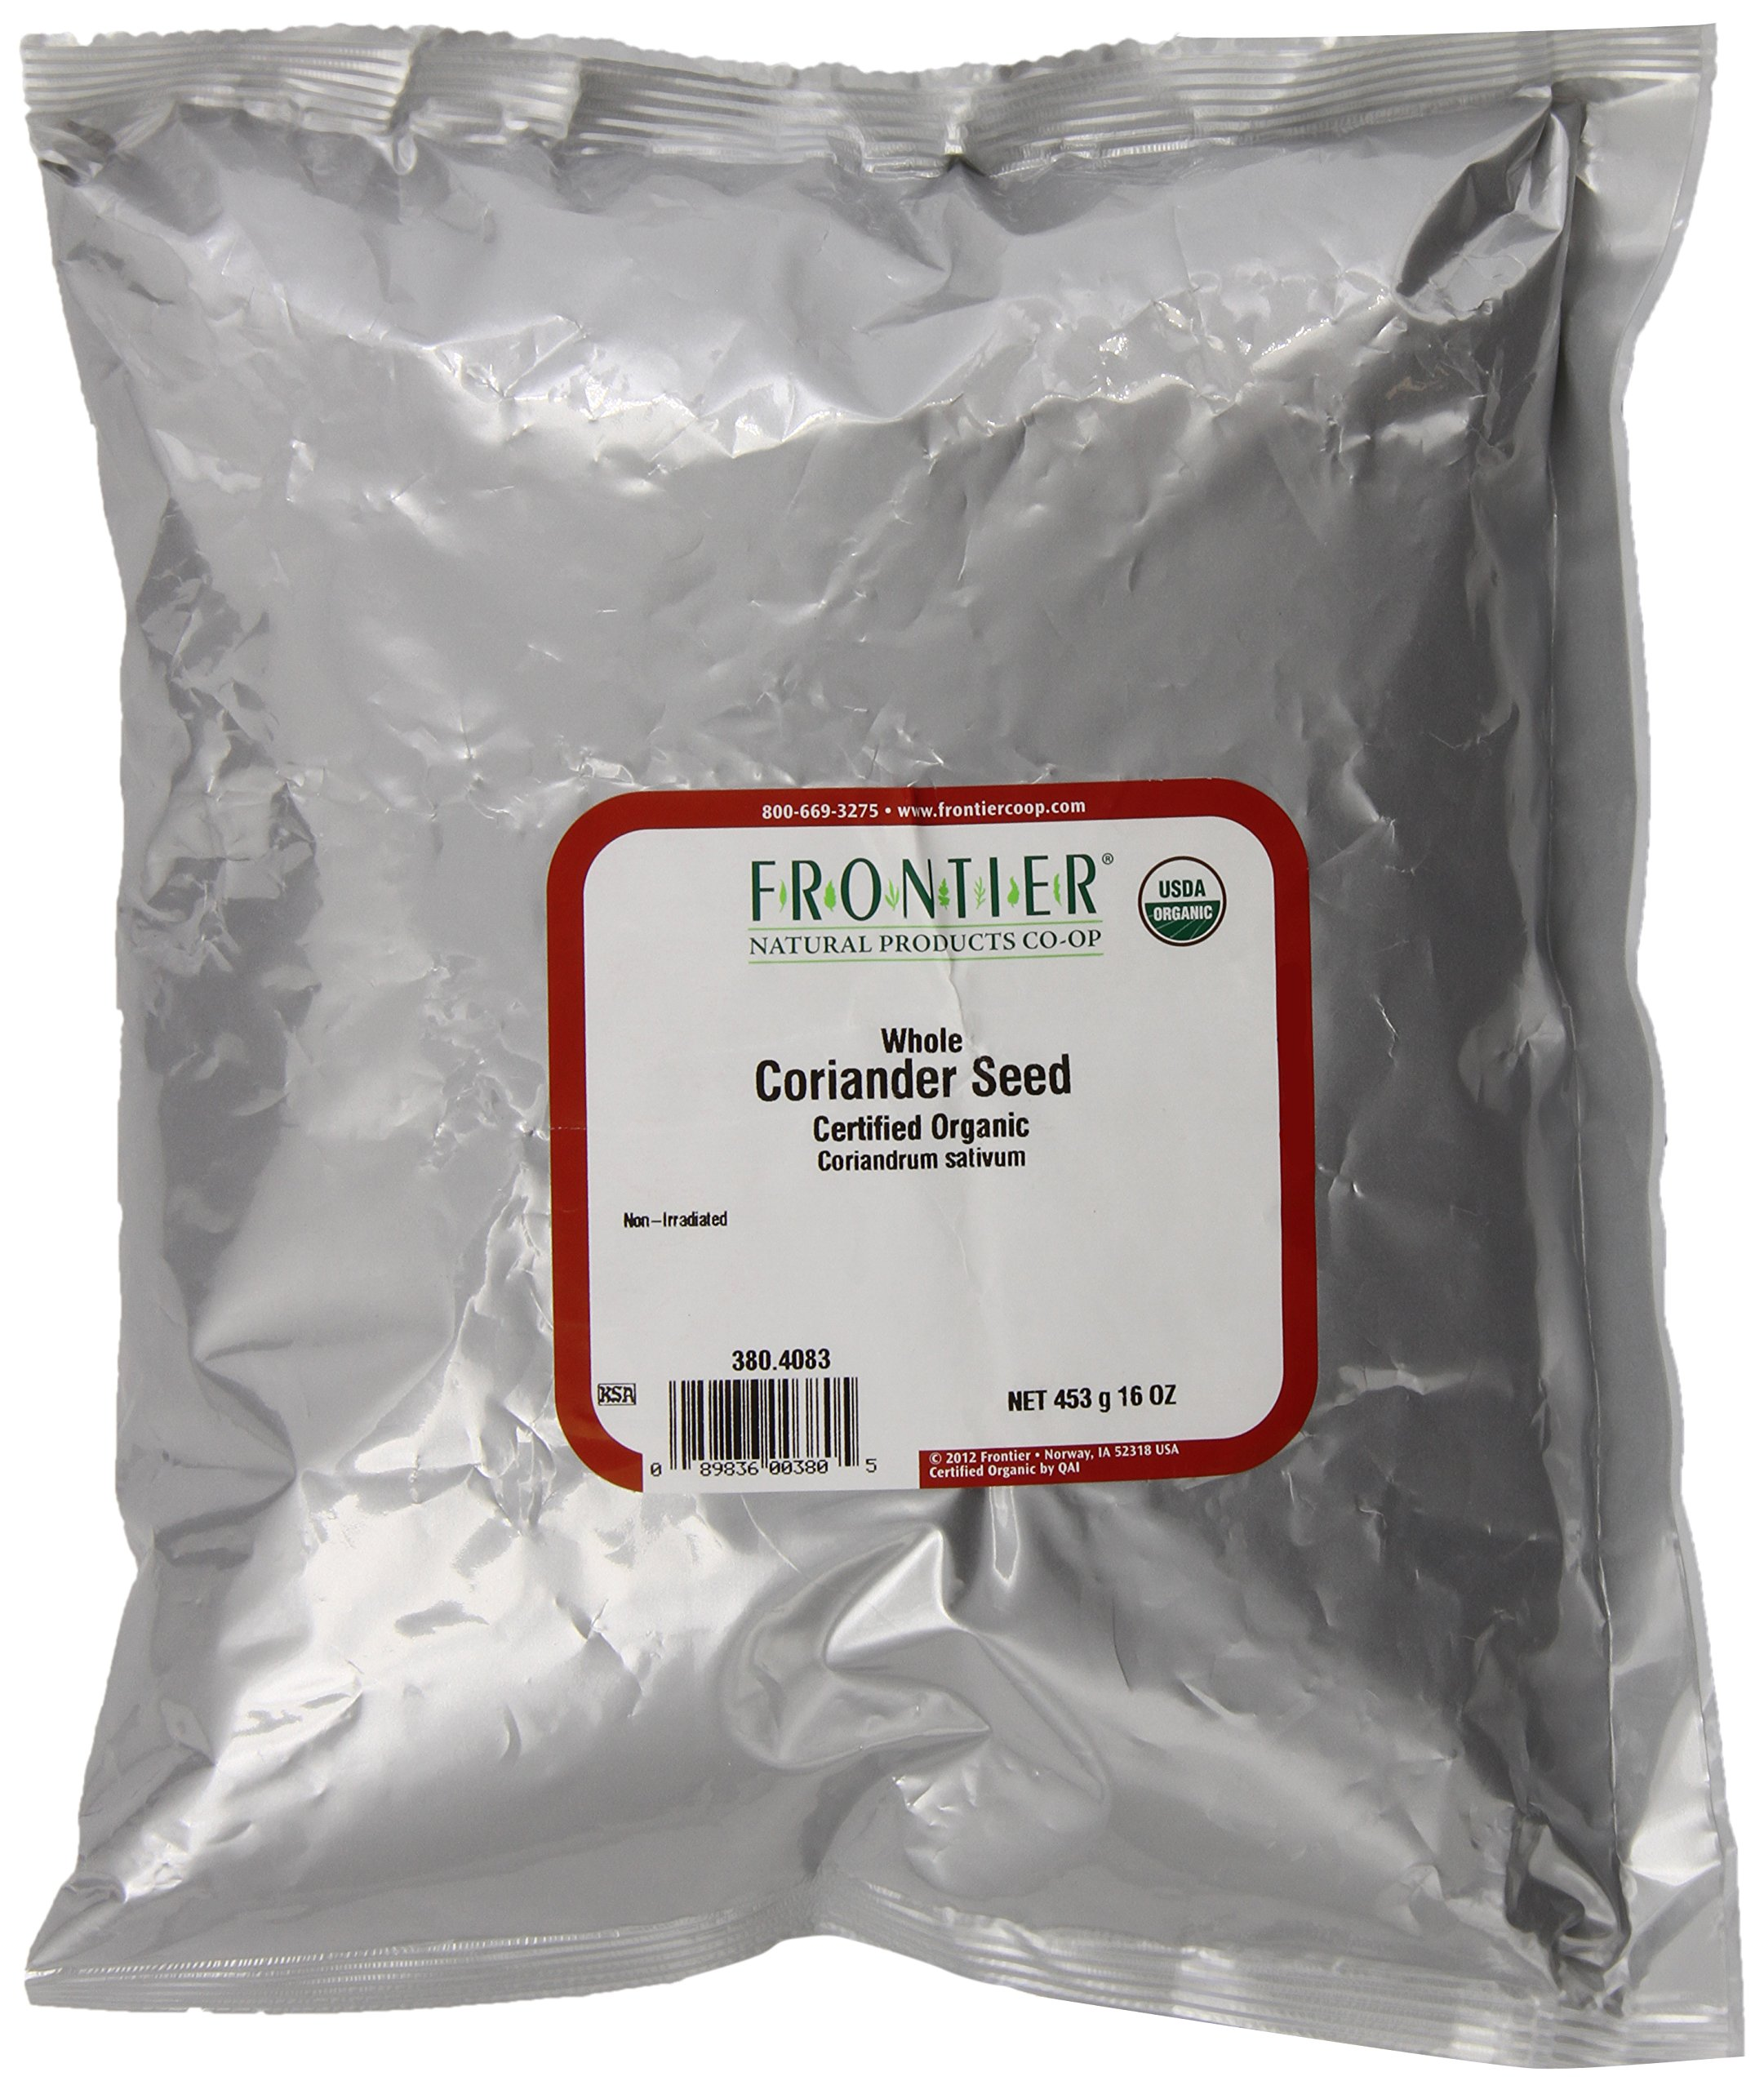 CORIANDER SEED WHOLE OG FRONTIER 1 LB